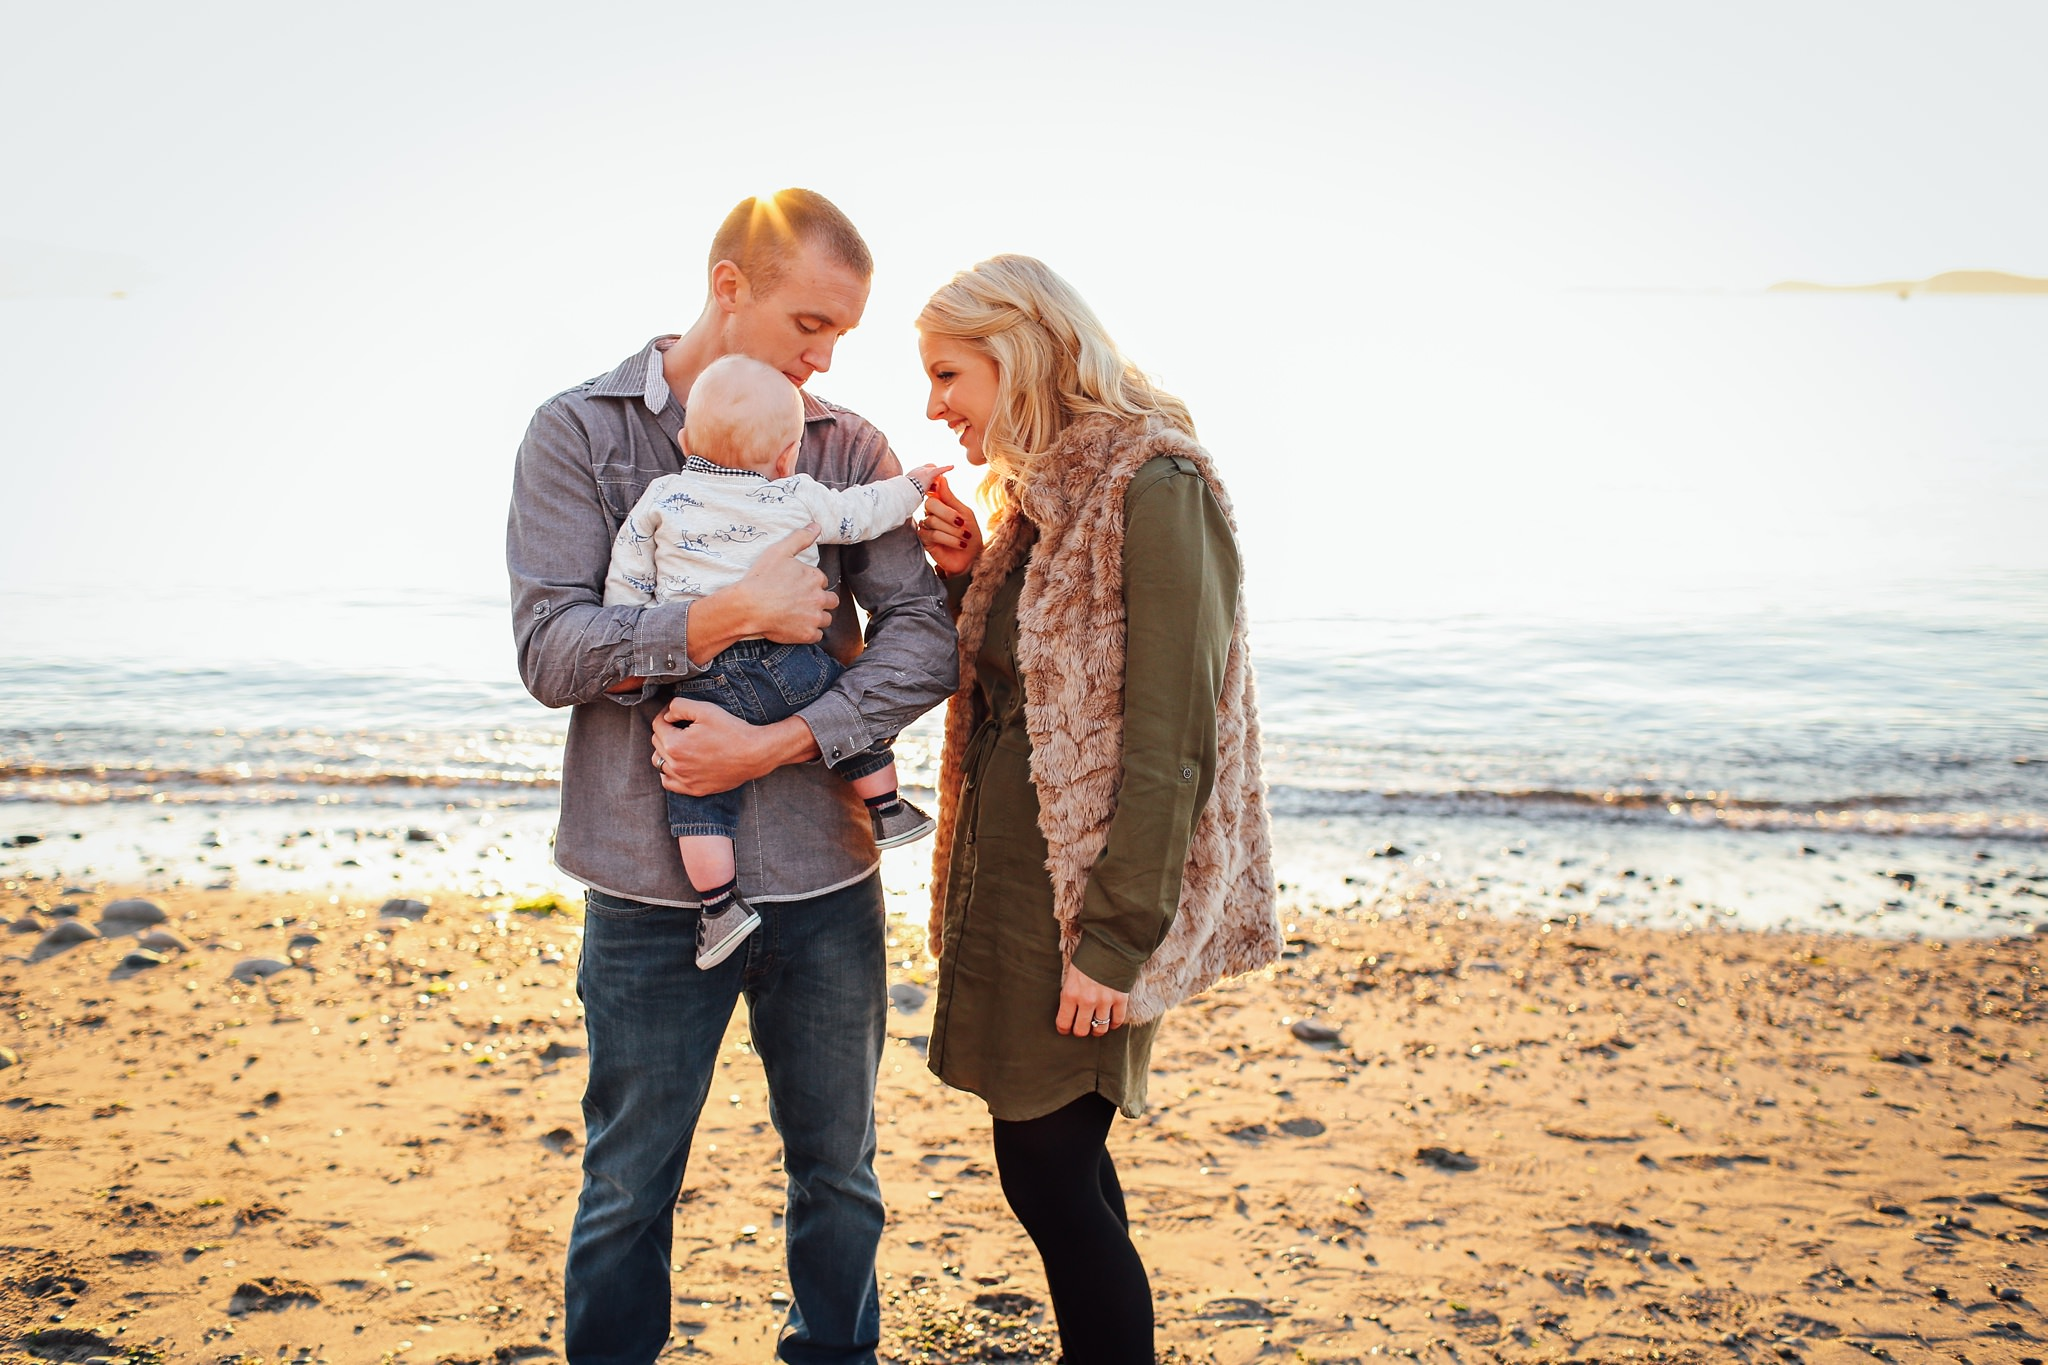 Whidbey-Island-Family-Photographer-Kara-Chappell-Photography_1384.jpg